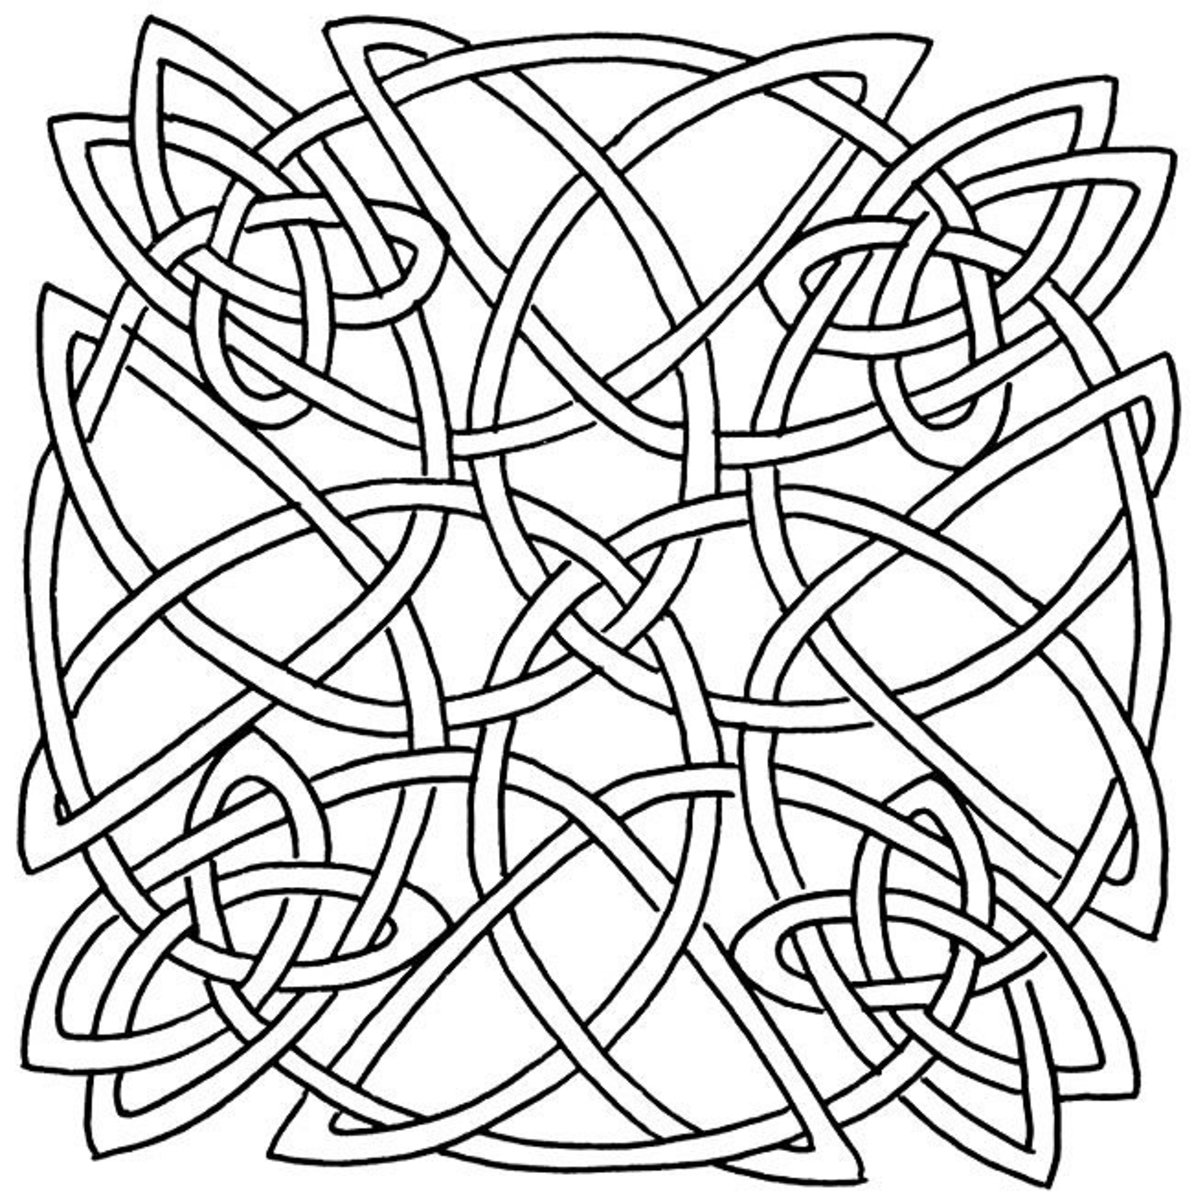 Celtic Design Art Coloring Pages for Kids Colouring Pictures to Print - Tribal